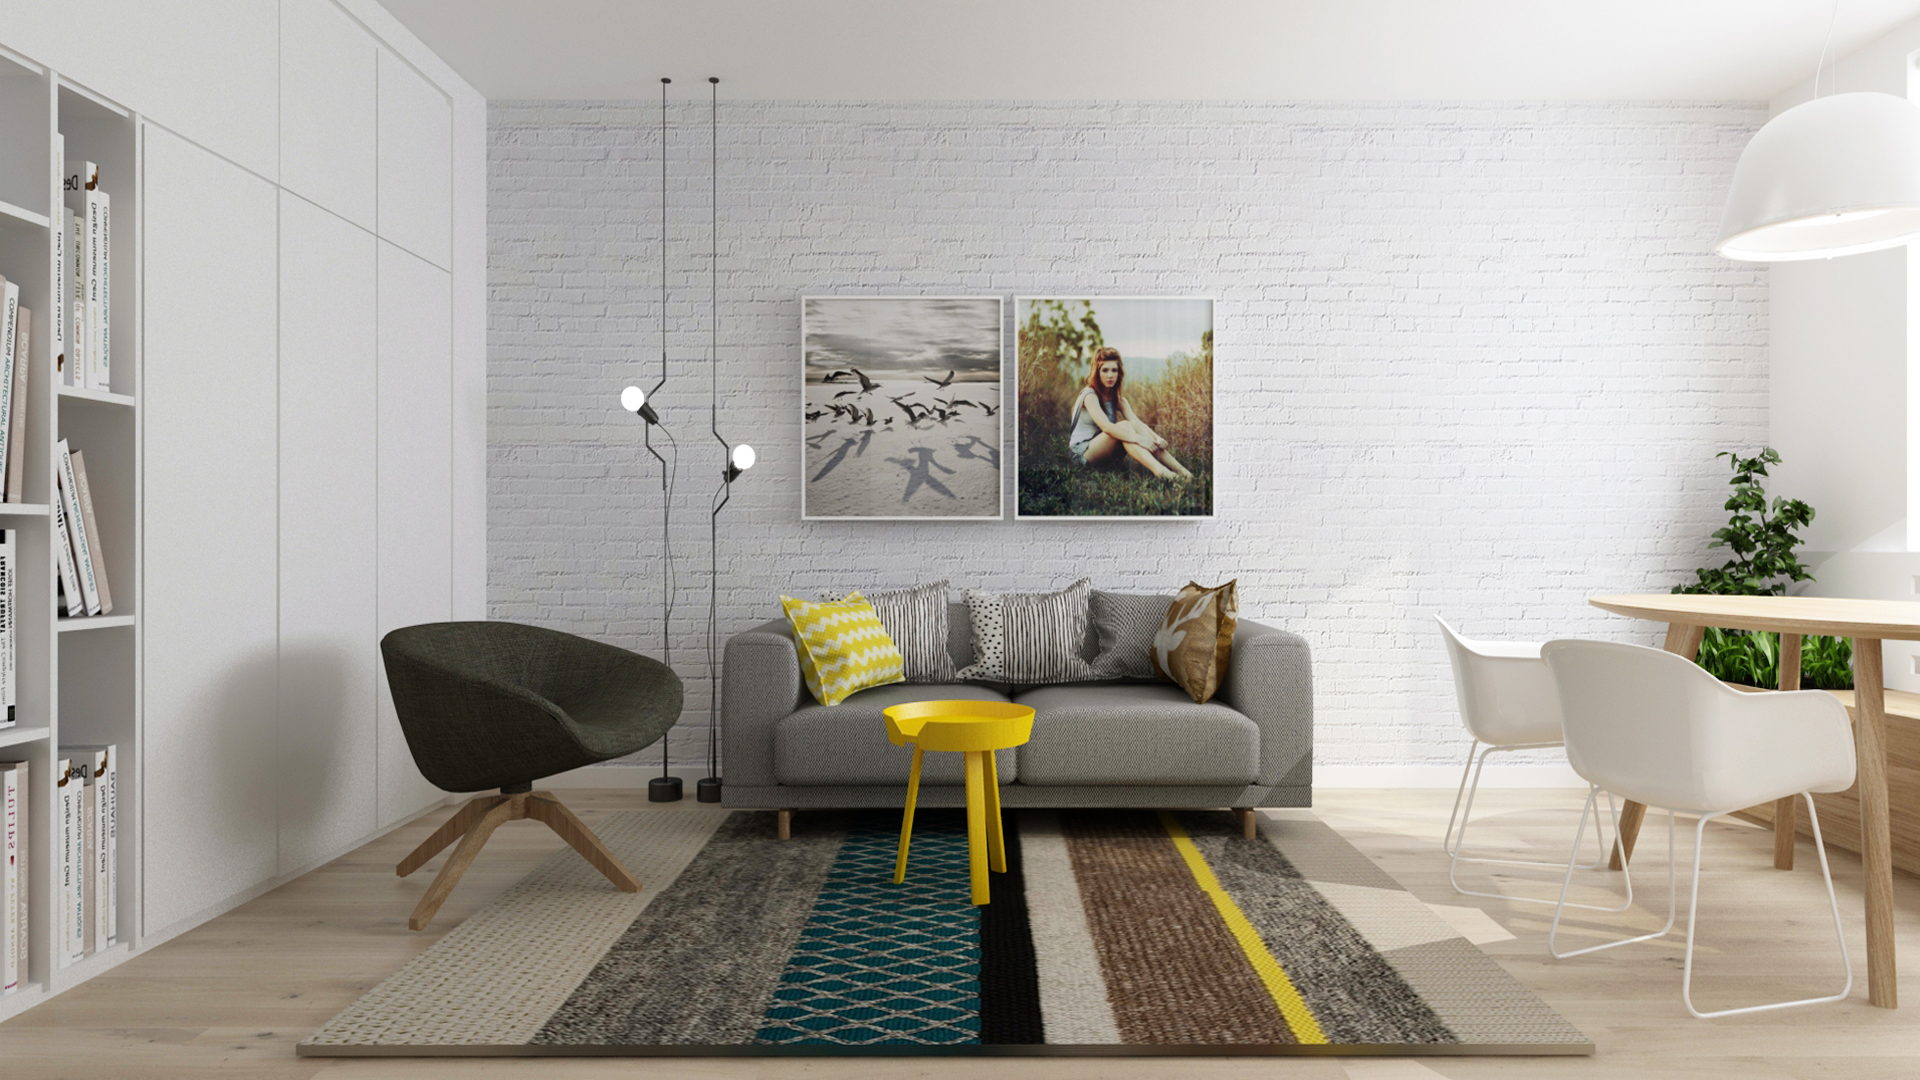 rekonstrukcia bytu, rekonstrukcia bytu bratislava, navrh interieru bytu, navrh interieru jedalne, navrh interieru, interierovy dizajn, interierovy dizajner, muuto, muuto sofa, muuto armchair, interior design, interior designer, veronika paluchova, flat design, reconstruction bratislava, dub, prirodny dub, white flat, foscarini light,